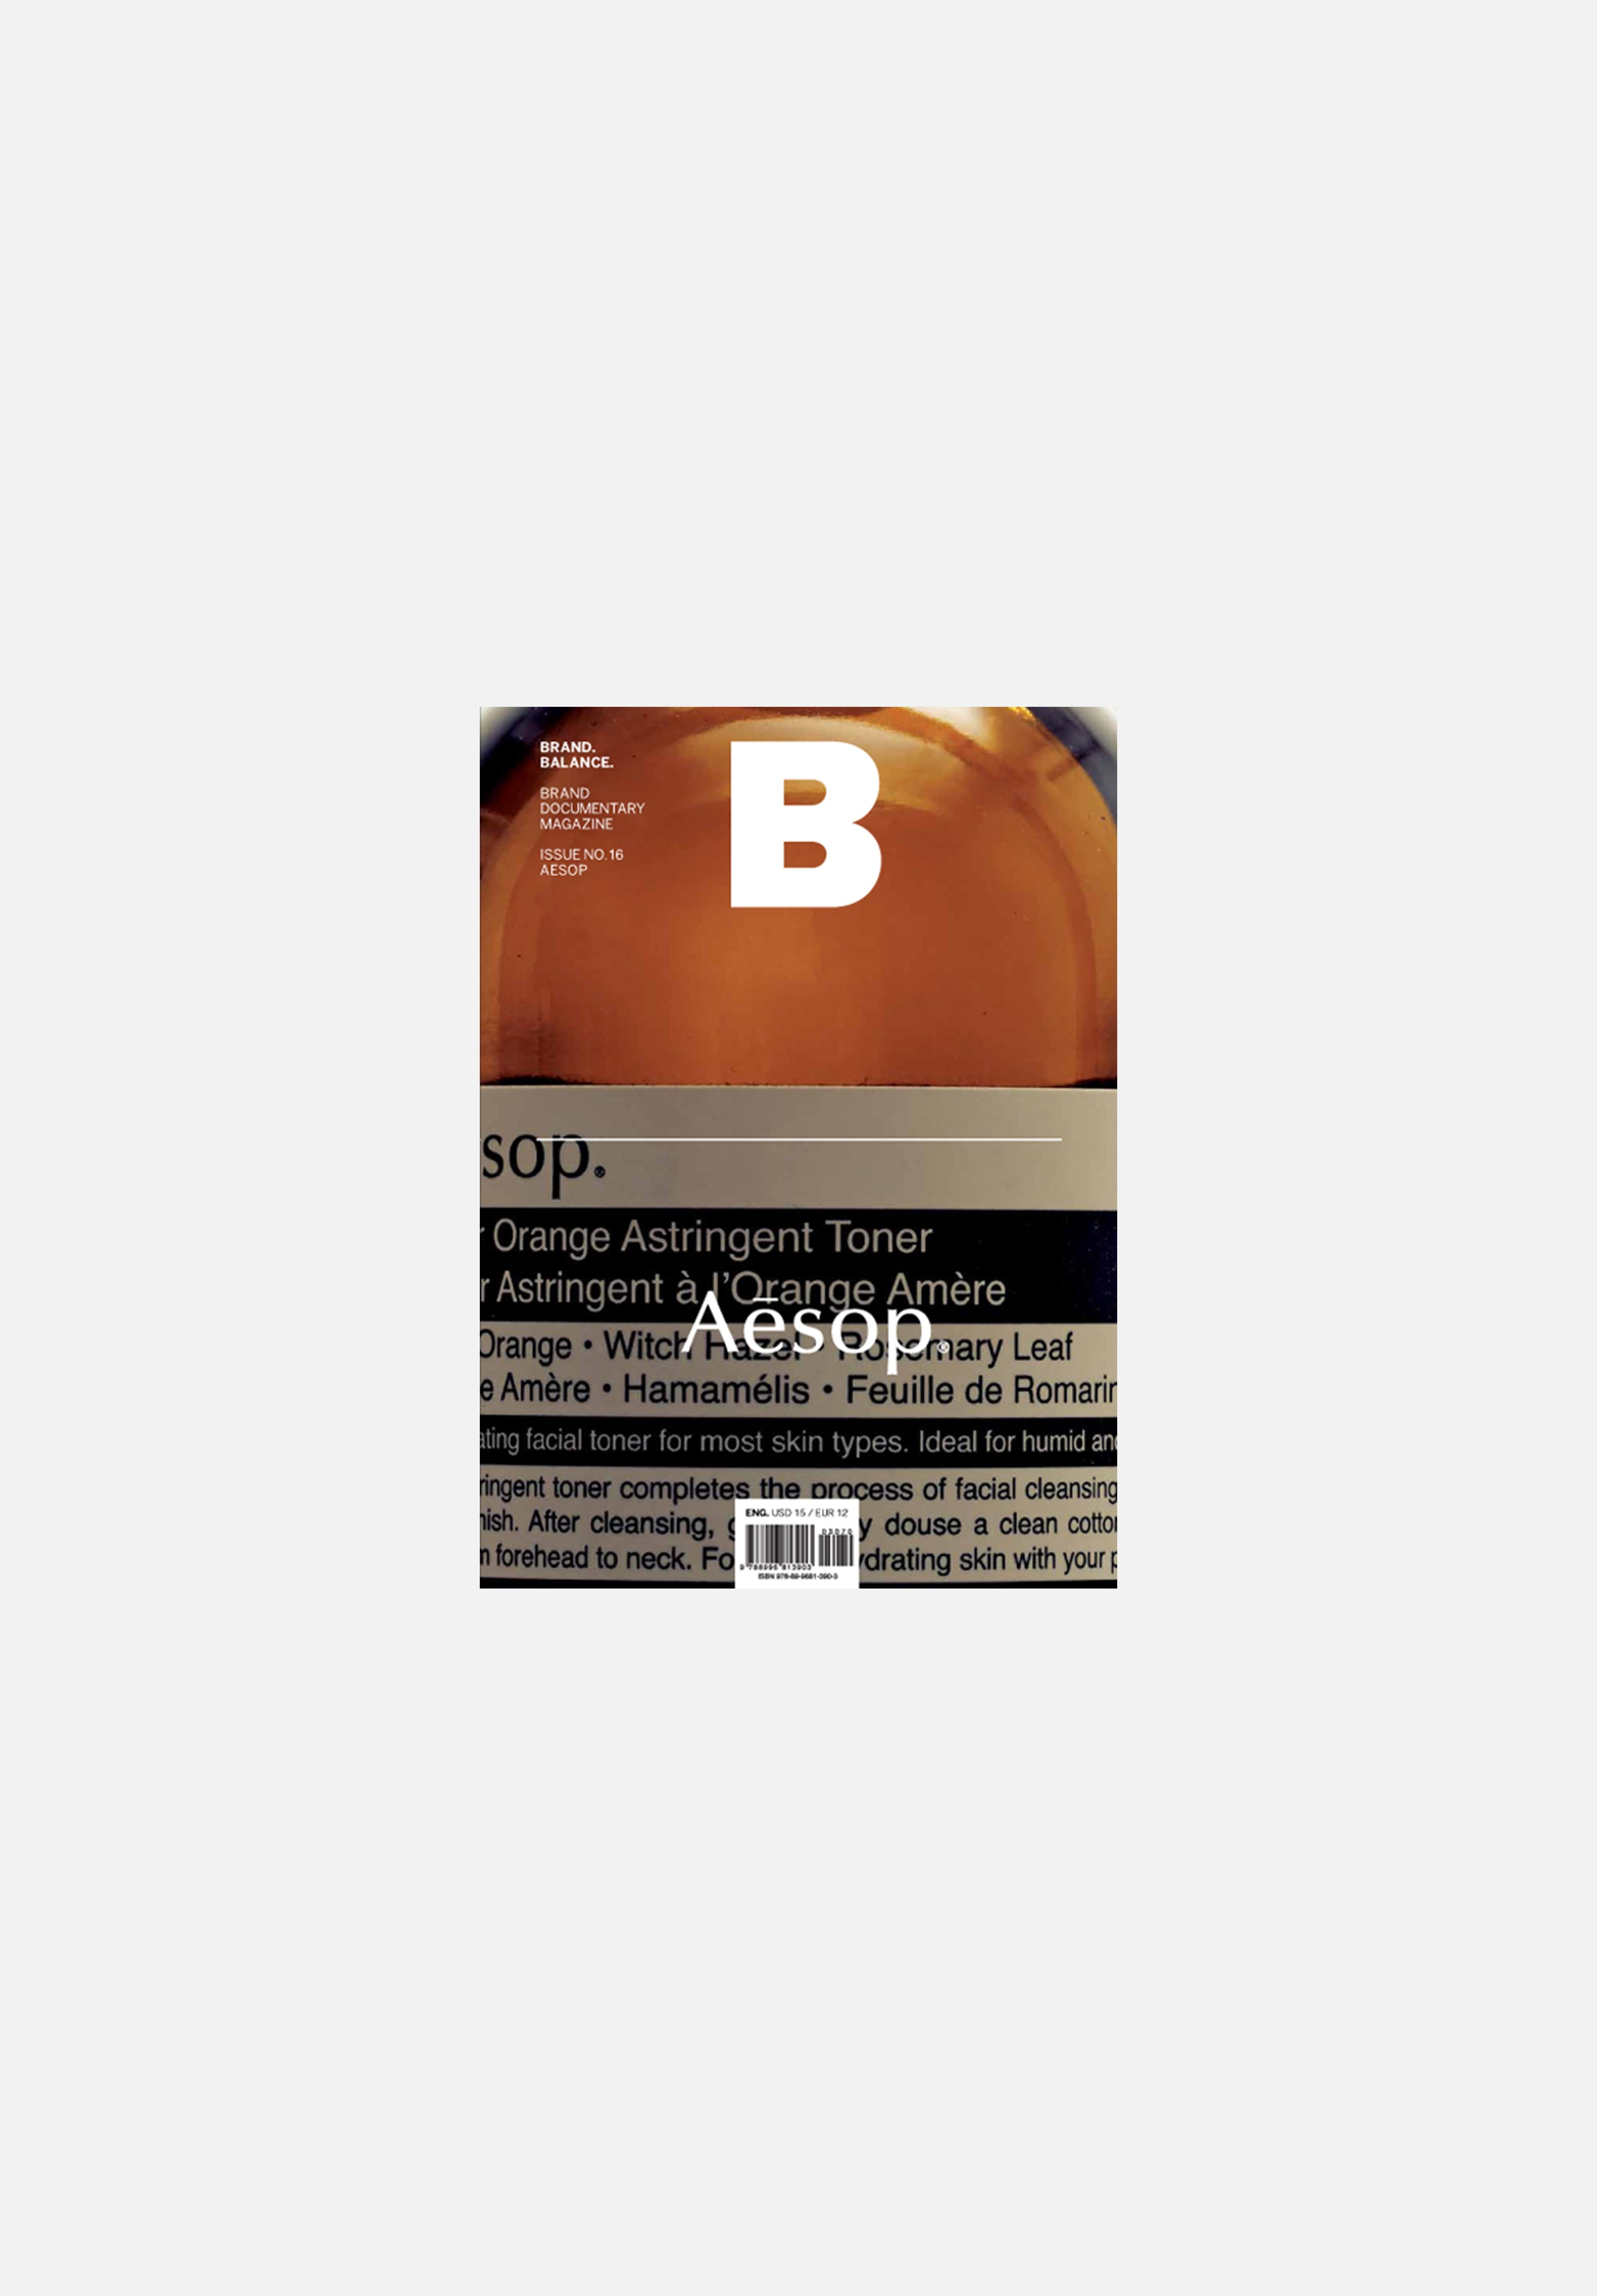 Issue 16: Aesop